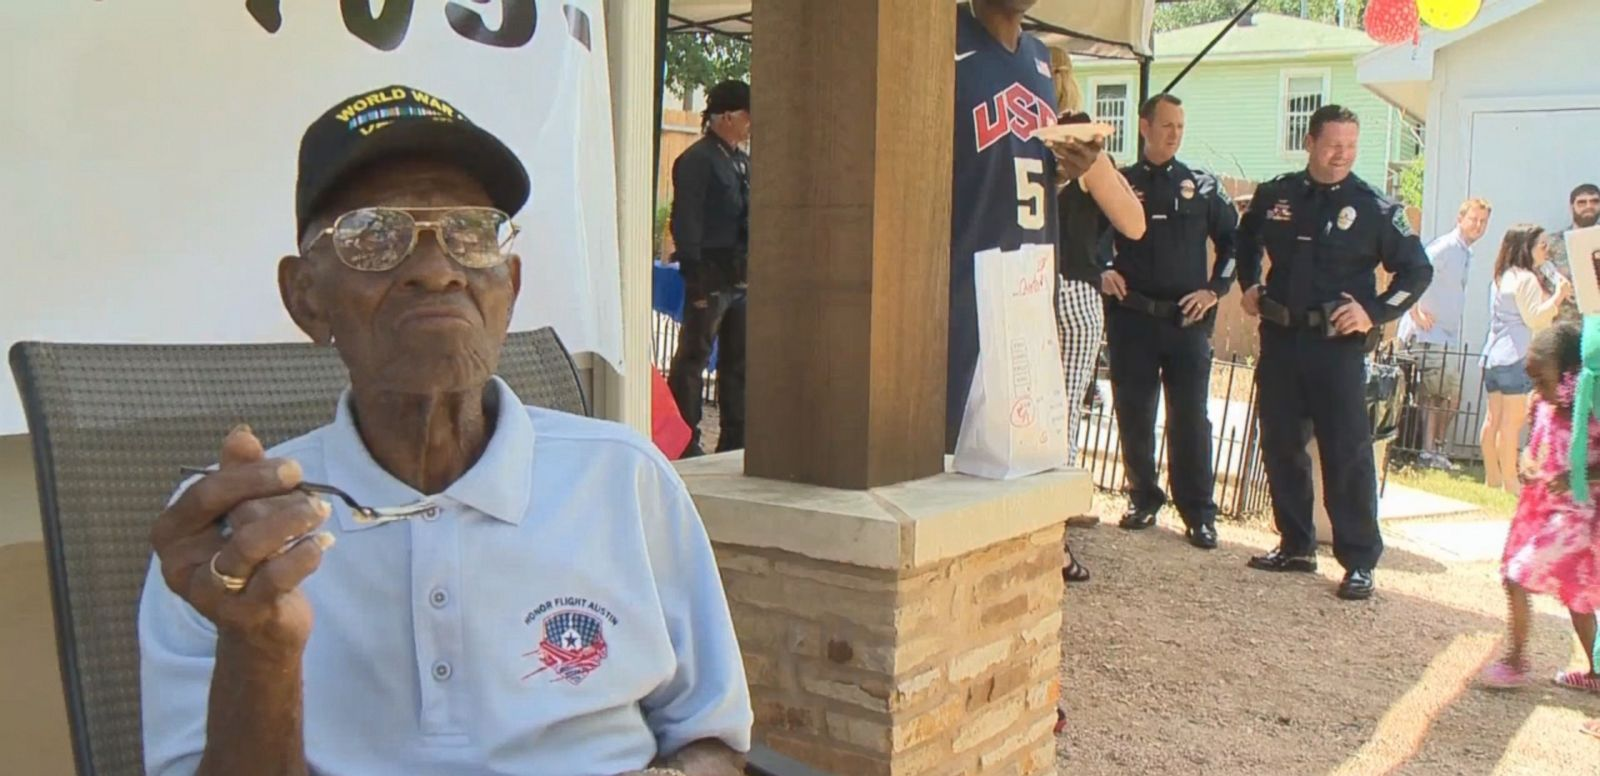 VIDEO: Richard Overton marked the upcoming occasion with a party in Austin, Texas, attended by extended family, the mayor and the assistant chief of police.